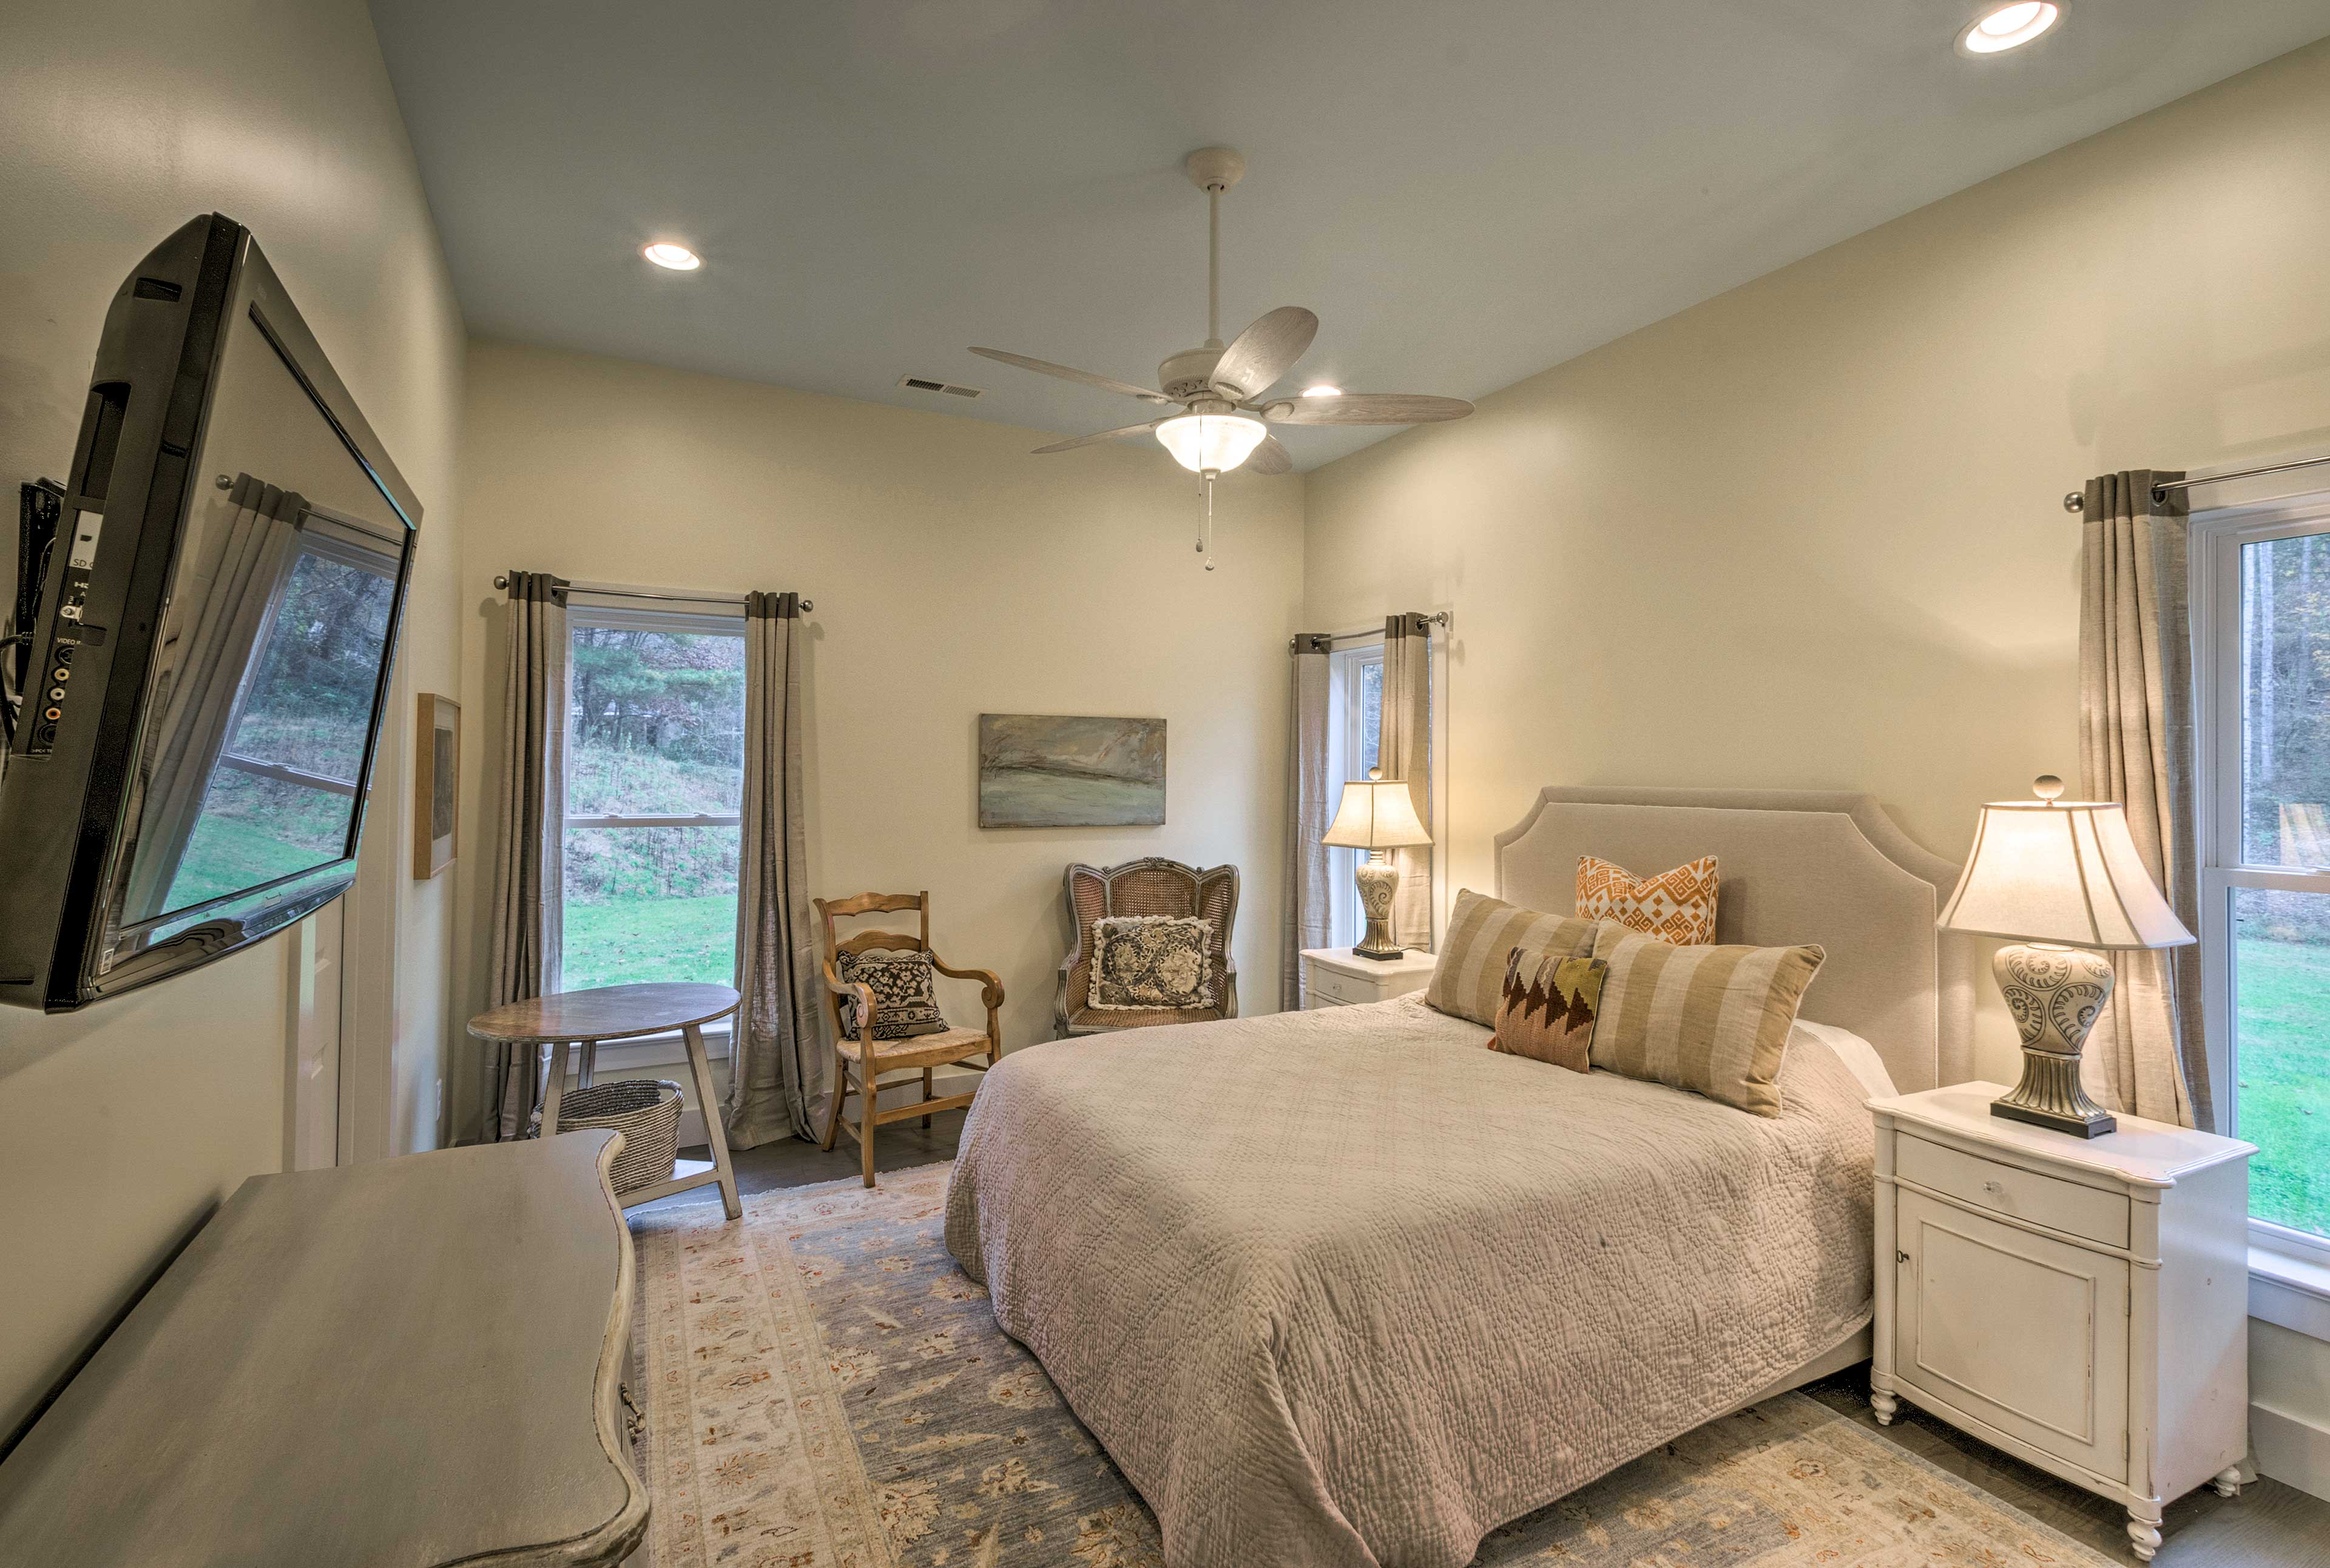 Take solace in one of 2 bedrooms for some privacy.